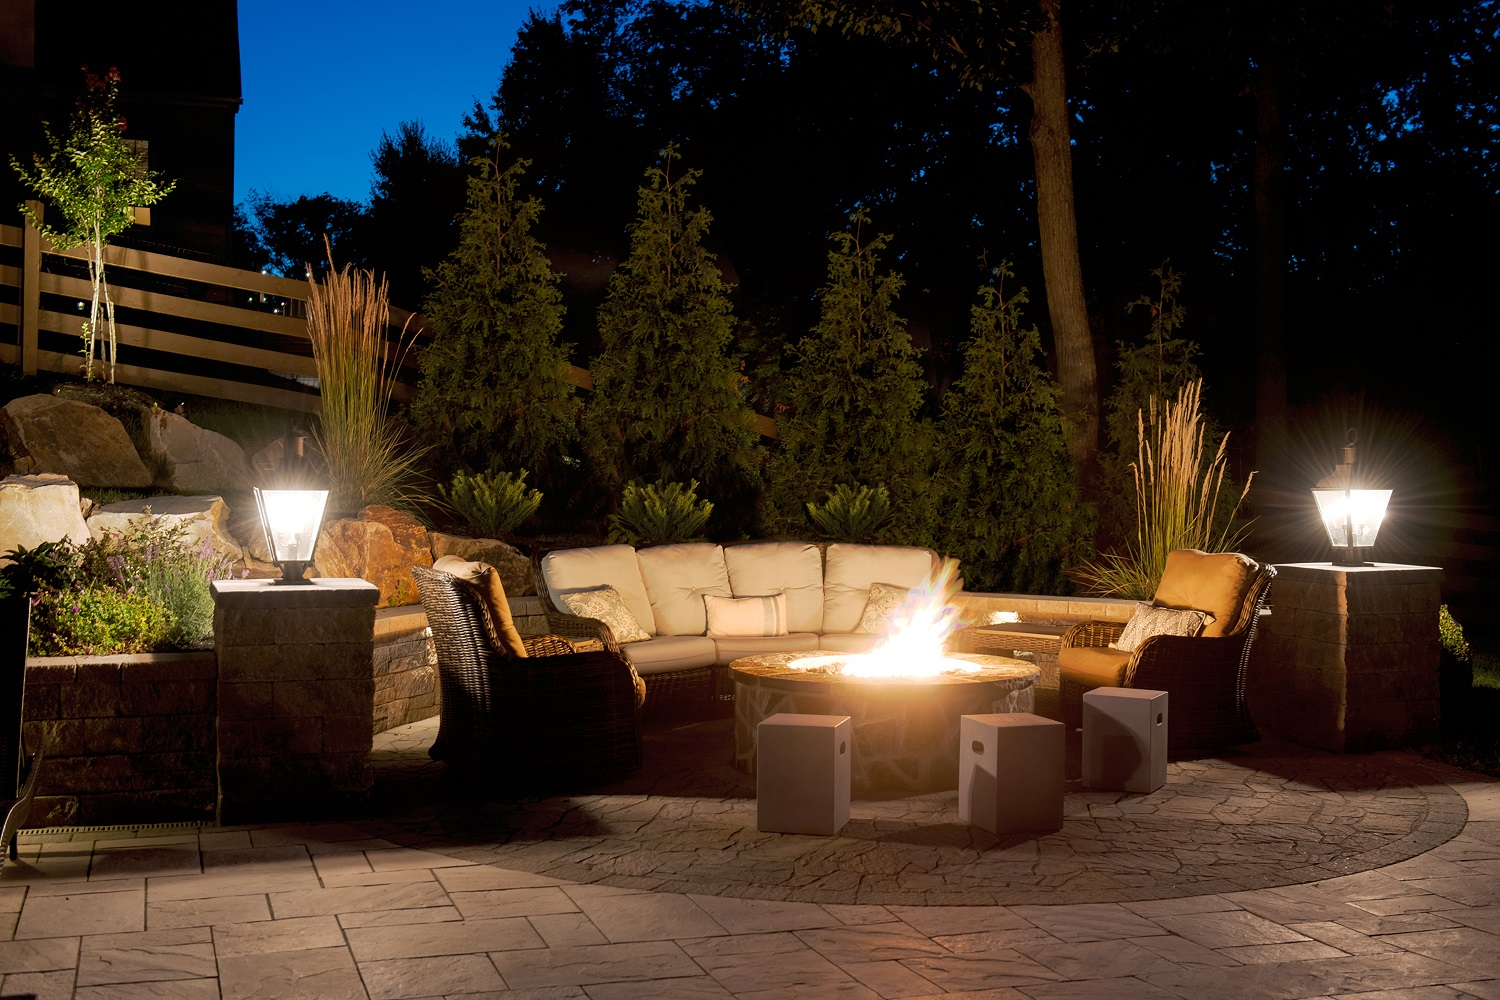 lighting on wall. Lighting (Firepit) Up-lighting On Trees, Cap Lights Wall And Pillar E